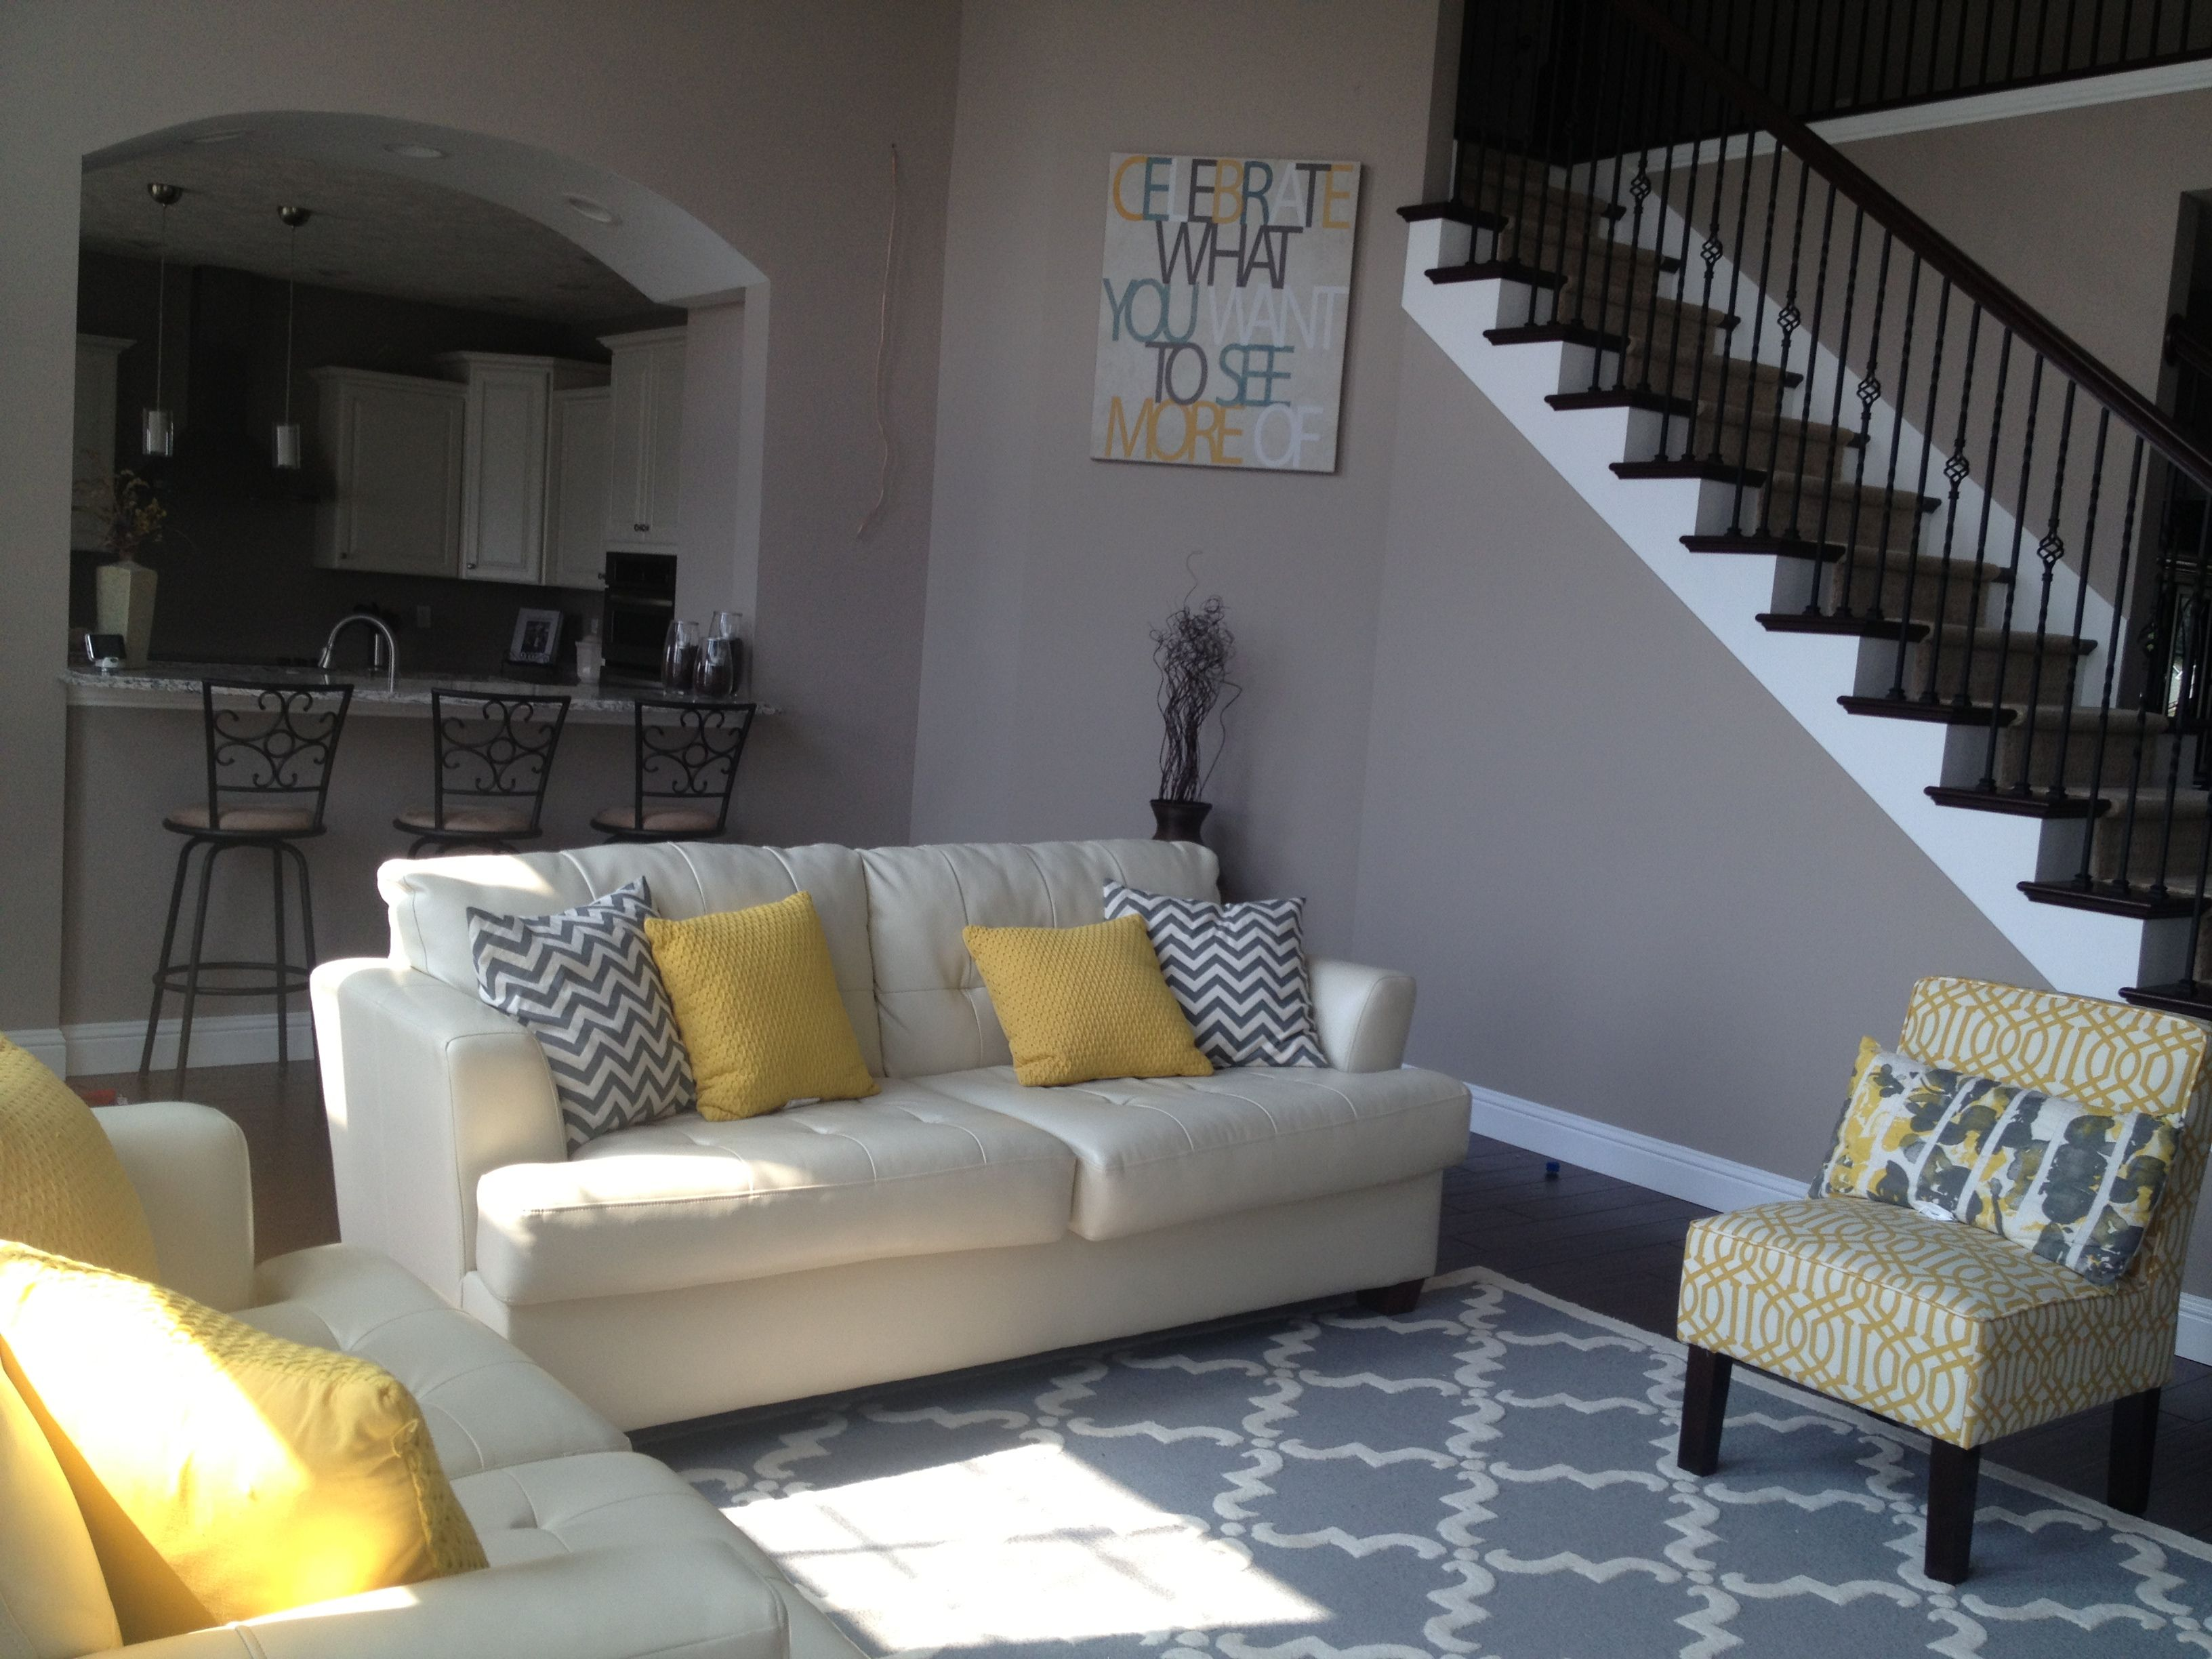 yellow and gray living room. Yellow and gray living room  Trellis rug Chevron pillows chair